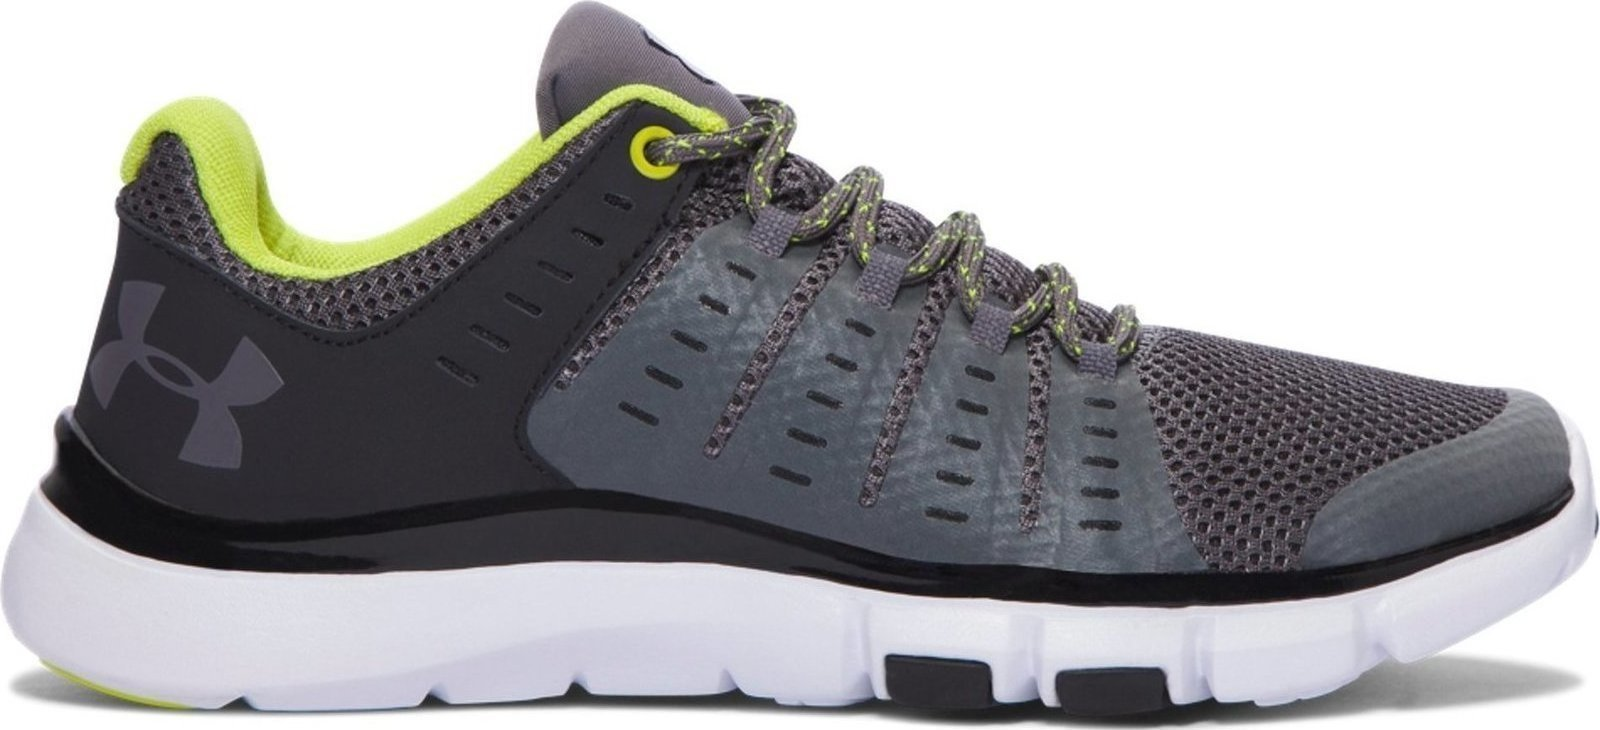 premium selection d488b d73bc Under Armour Micro G Limitless TR 2 1274417-076